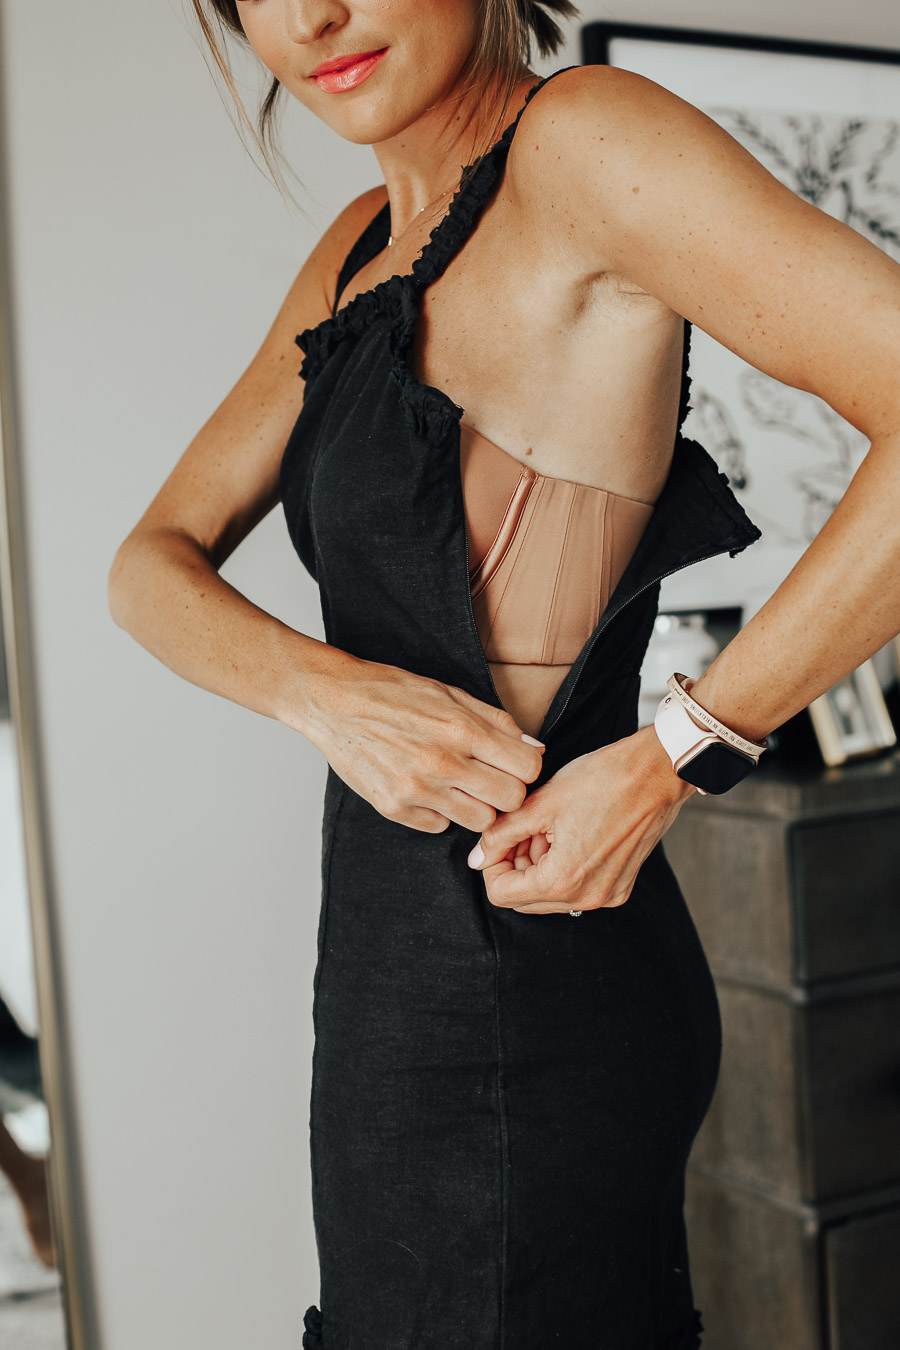 zipping up tight dress of world's most comfortable strapless bra that stays in place